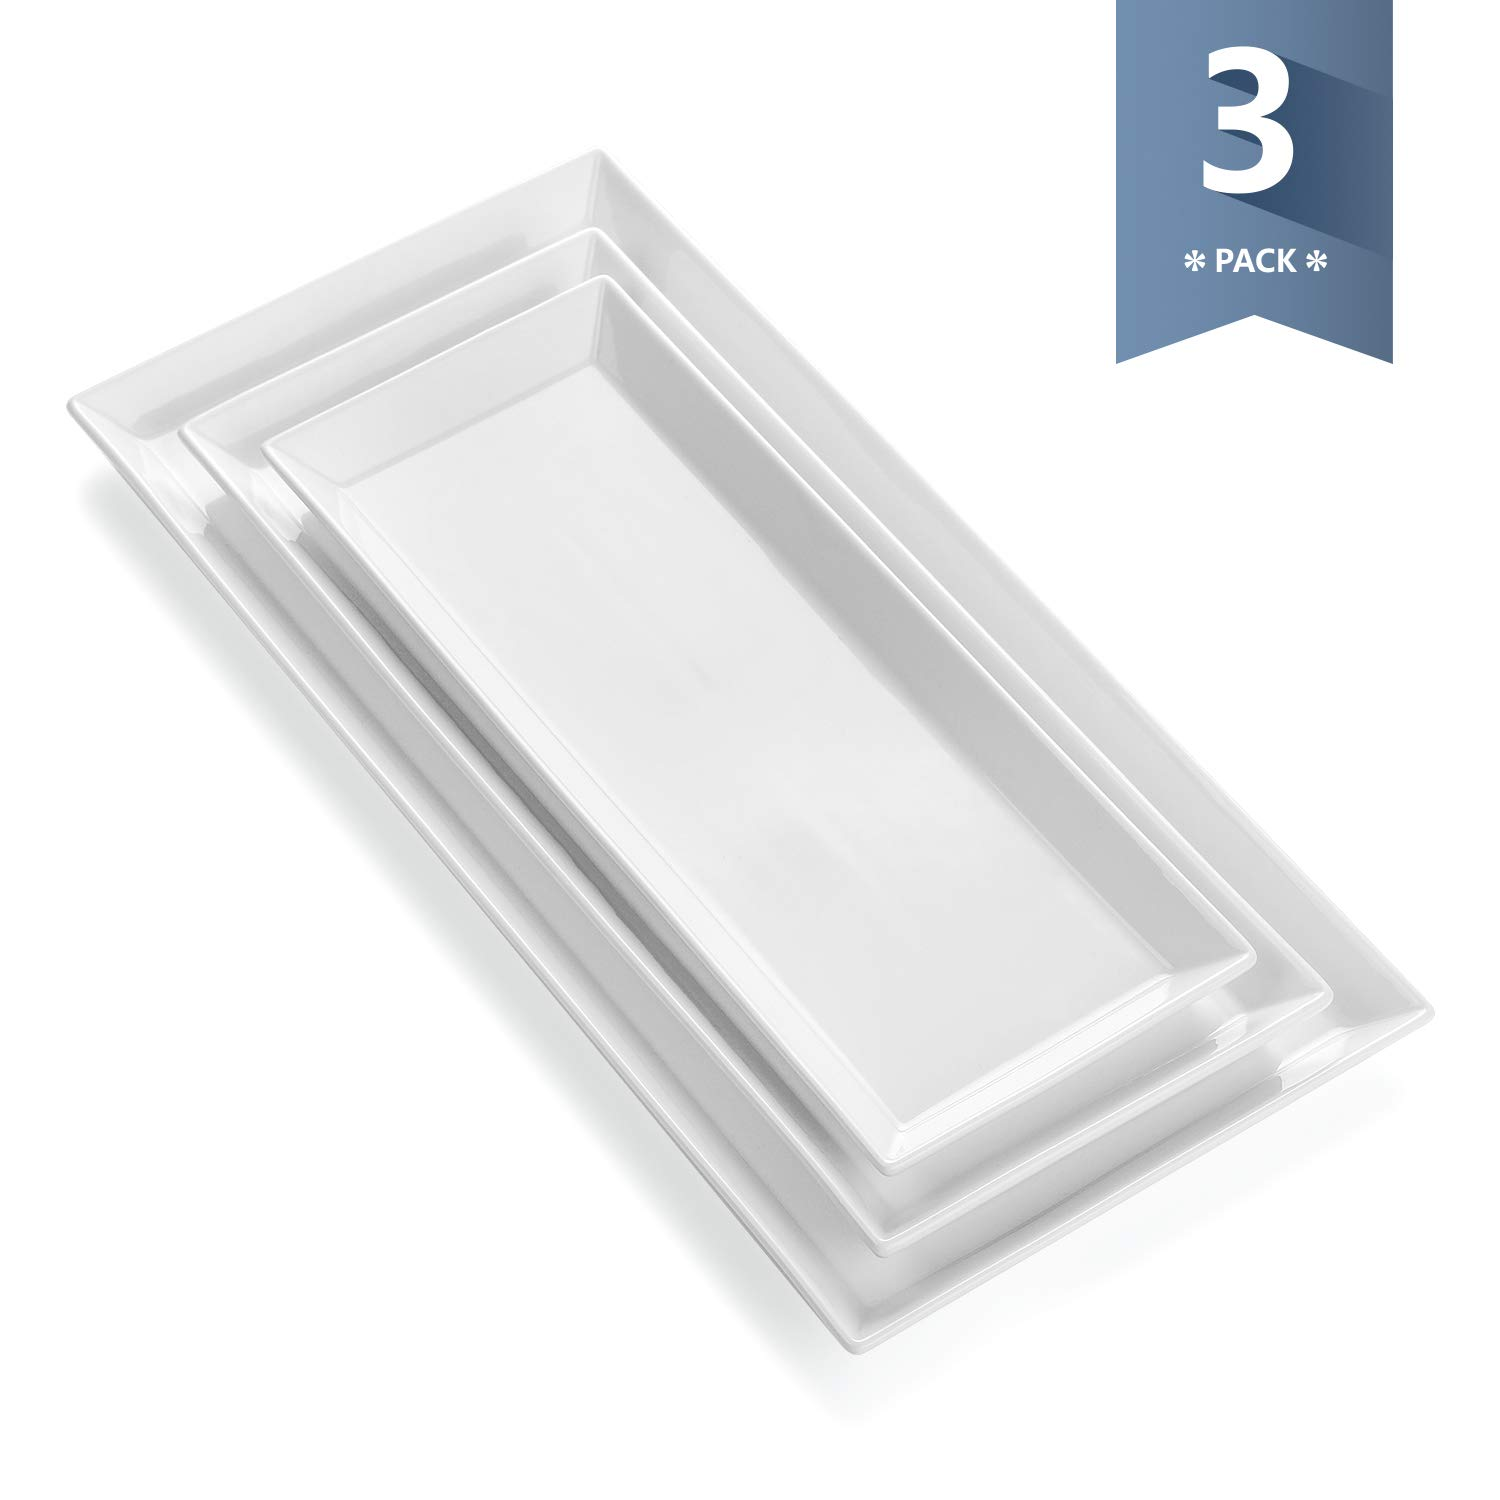 Sweese 3308 Porcelain Rectangular Platters/Serving trays for parties, Set of 3, Large/Medium/Small Size, White